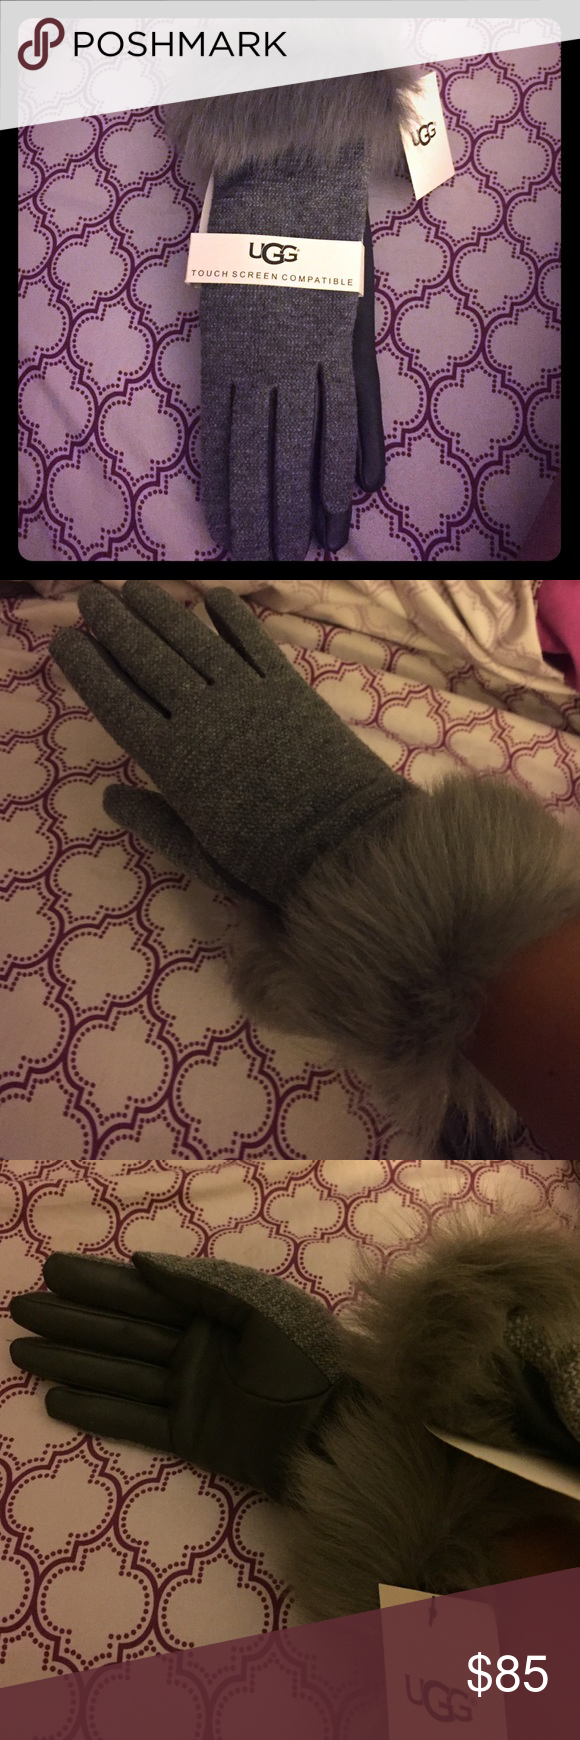 Ugg touch screen compatible gloves These are some really nice and classy with a little sassy gloves with the fur size small.  A nice soft and dark grey with soft leather in the palms.  Not to mention the touchscreen capabilities that allow you to use your smart device while staying warm for the winter! UGG Accessories Gloves & Mittens